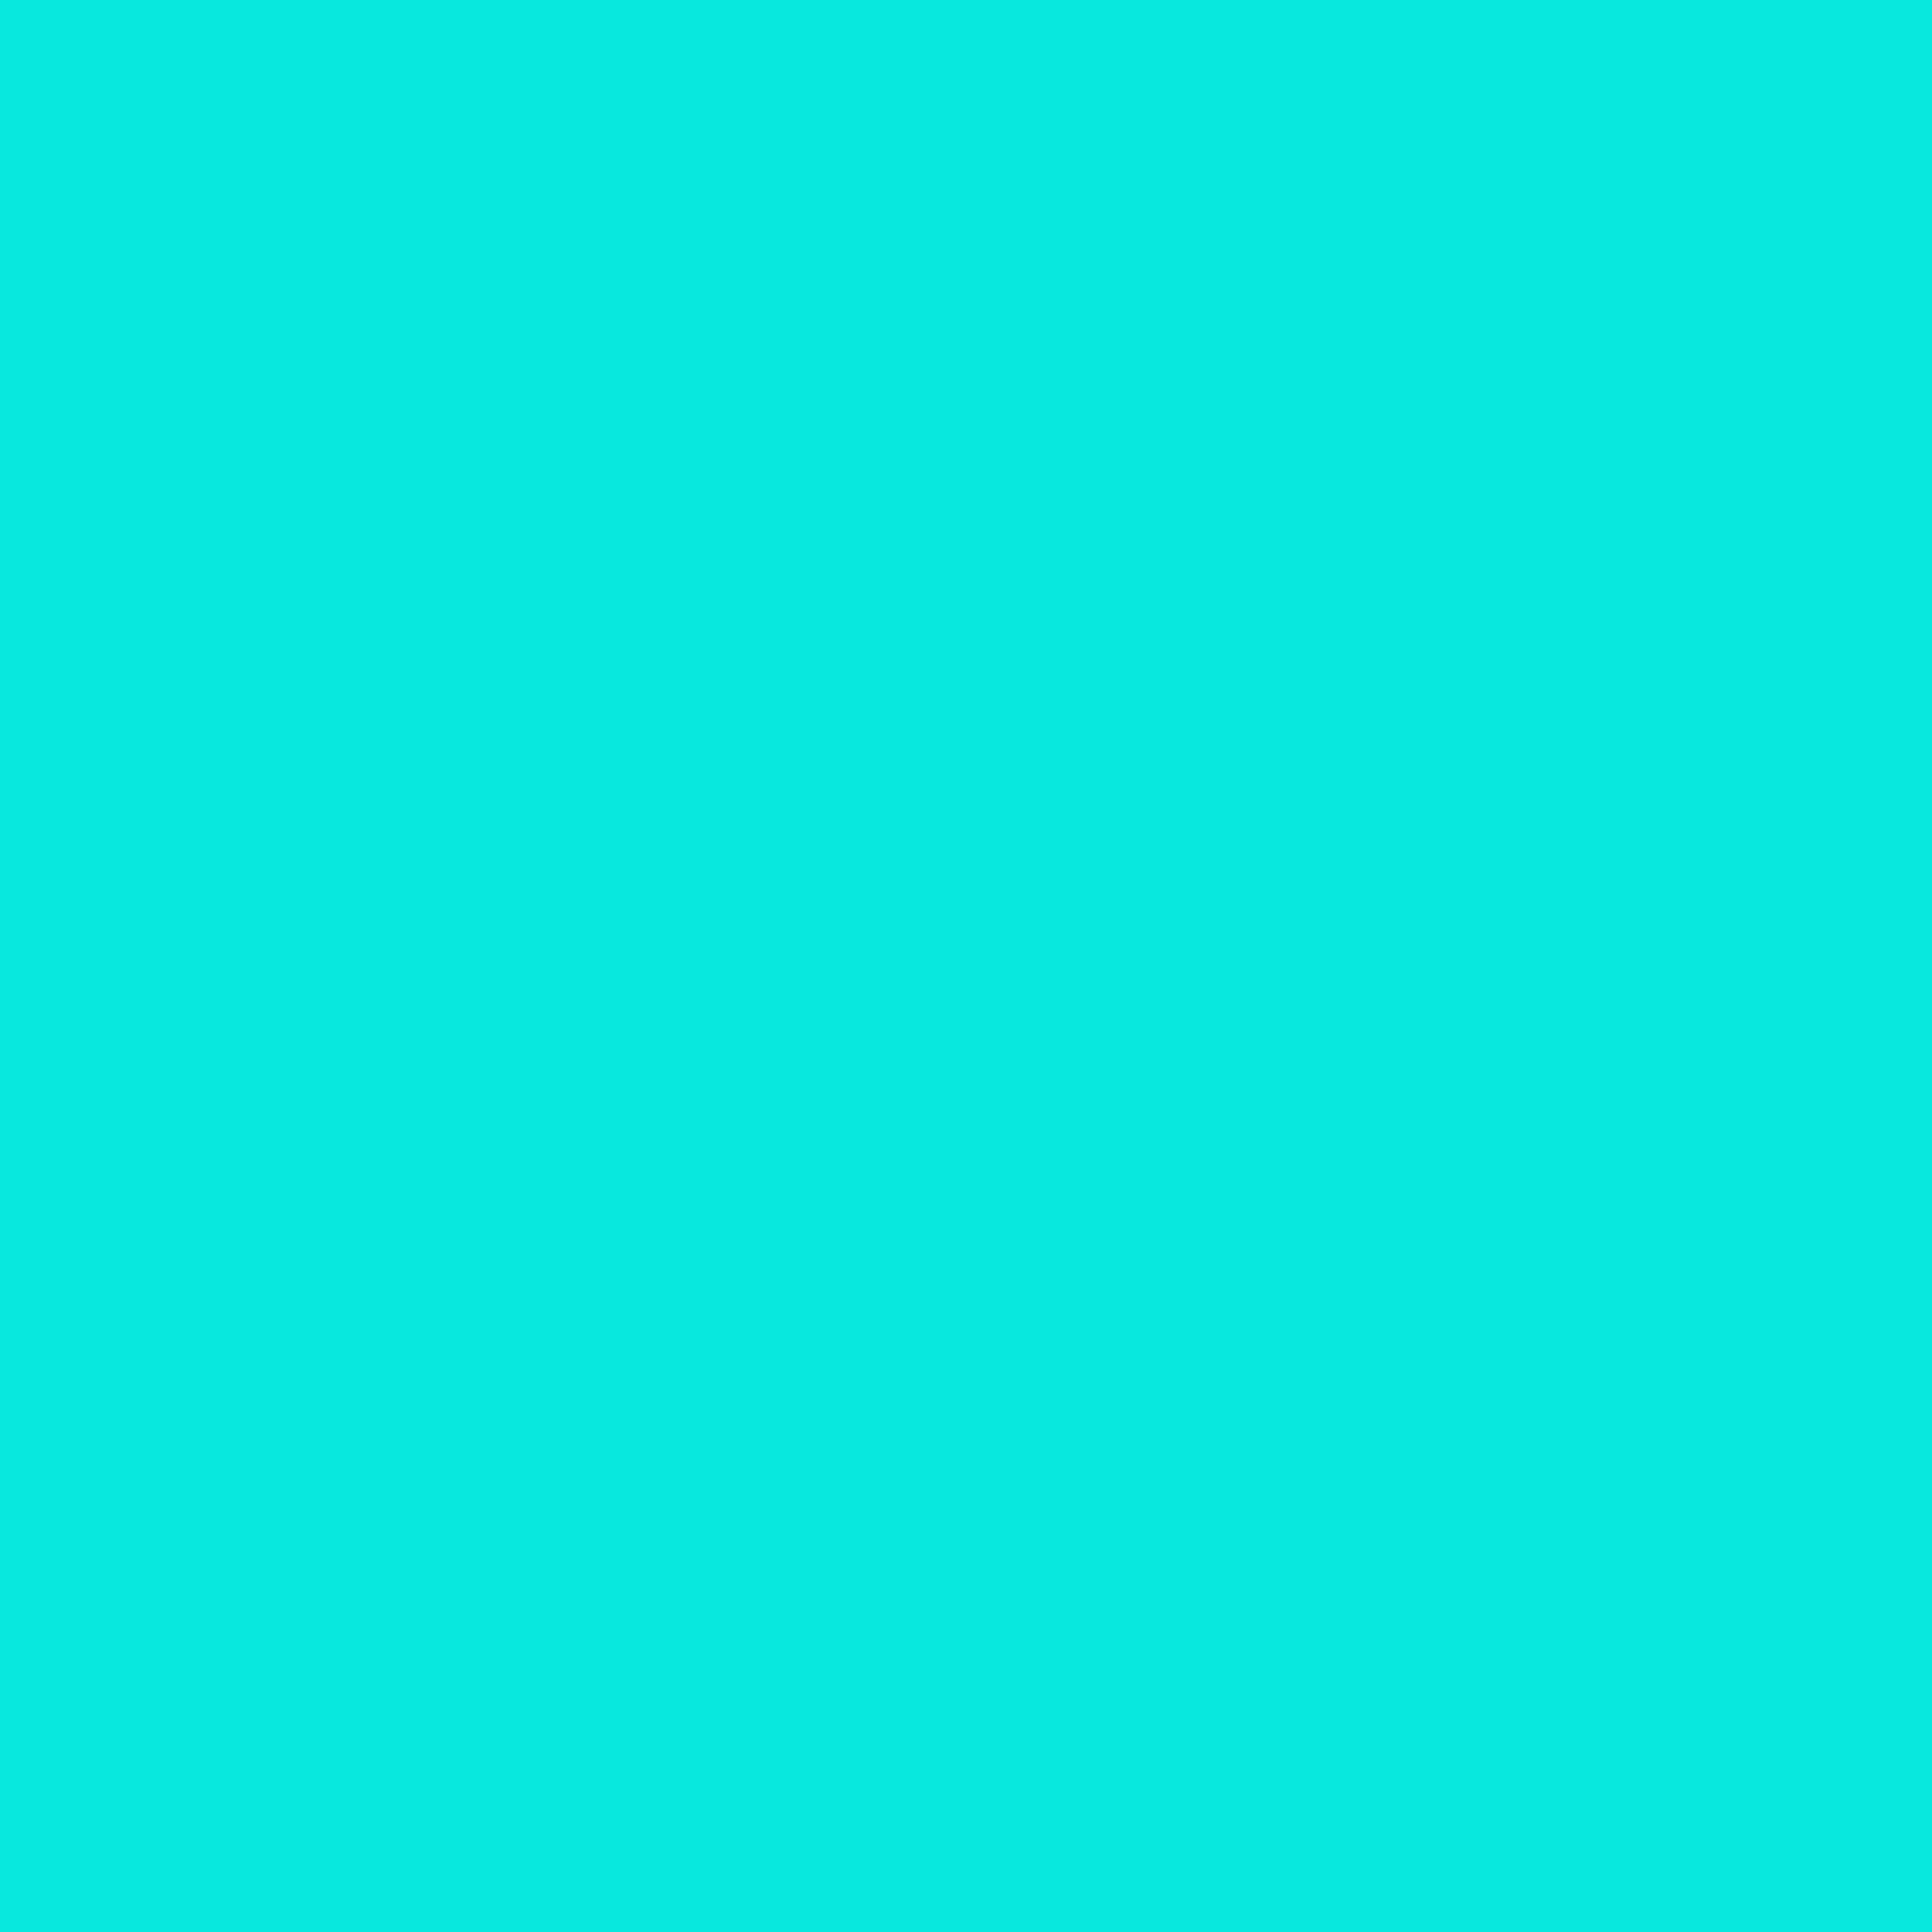 2732x2732 Bright Turquoise Solid Color Background